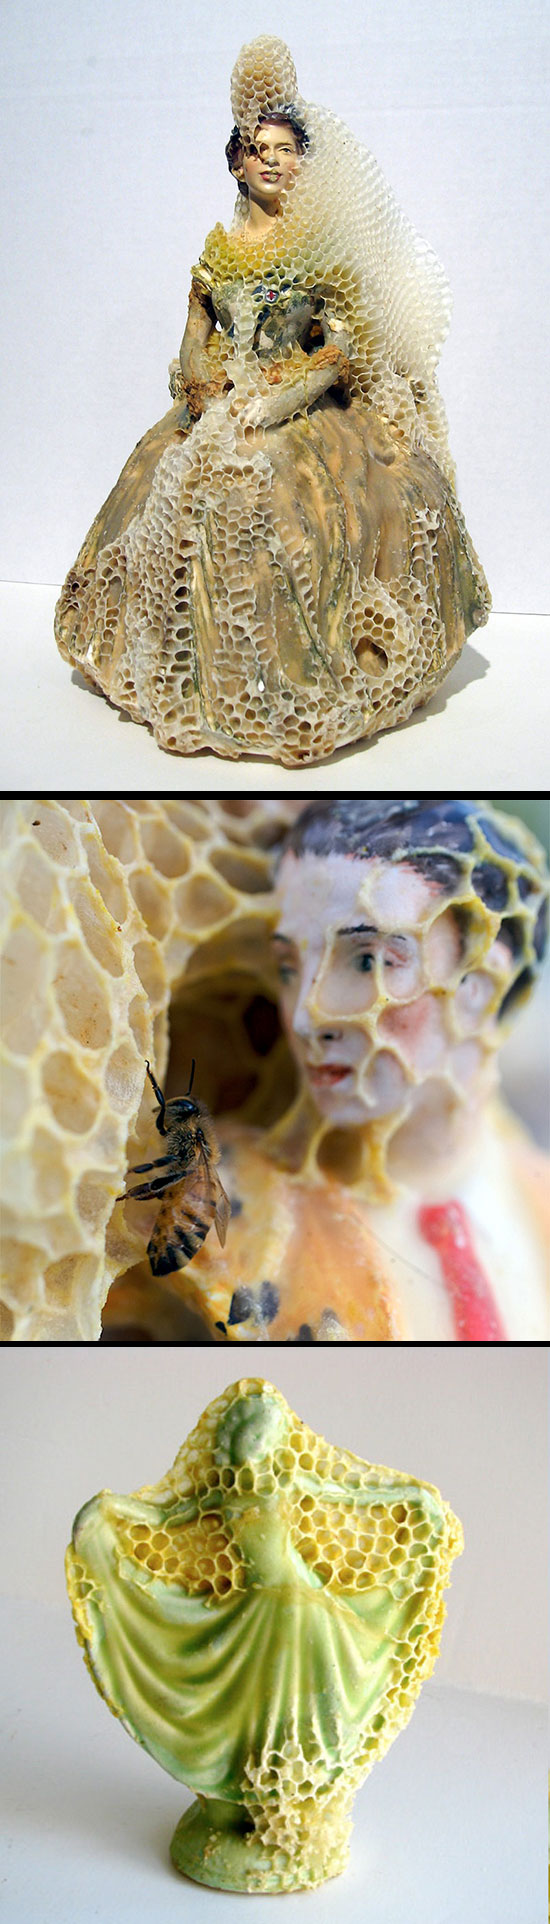 Aganetha Dyck, sculptures made by honeybees